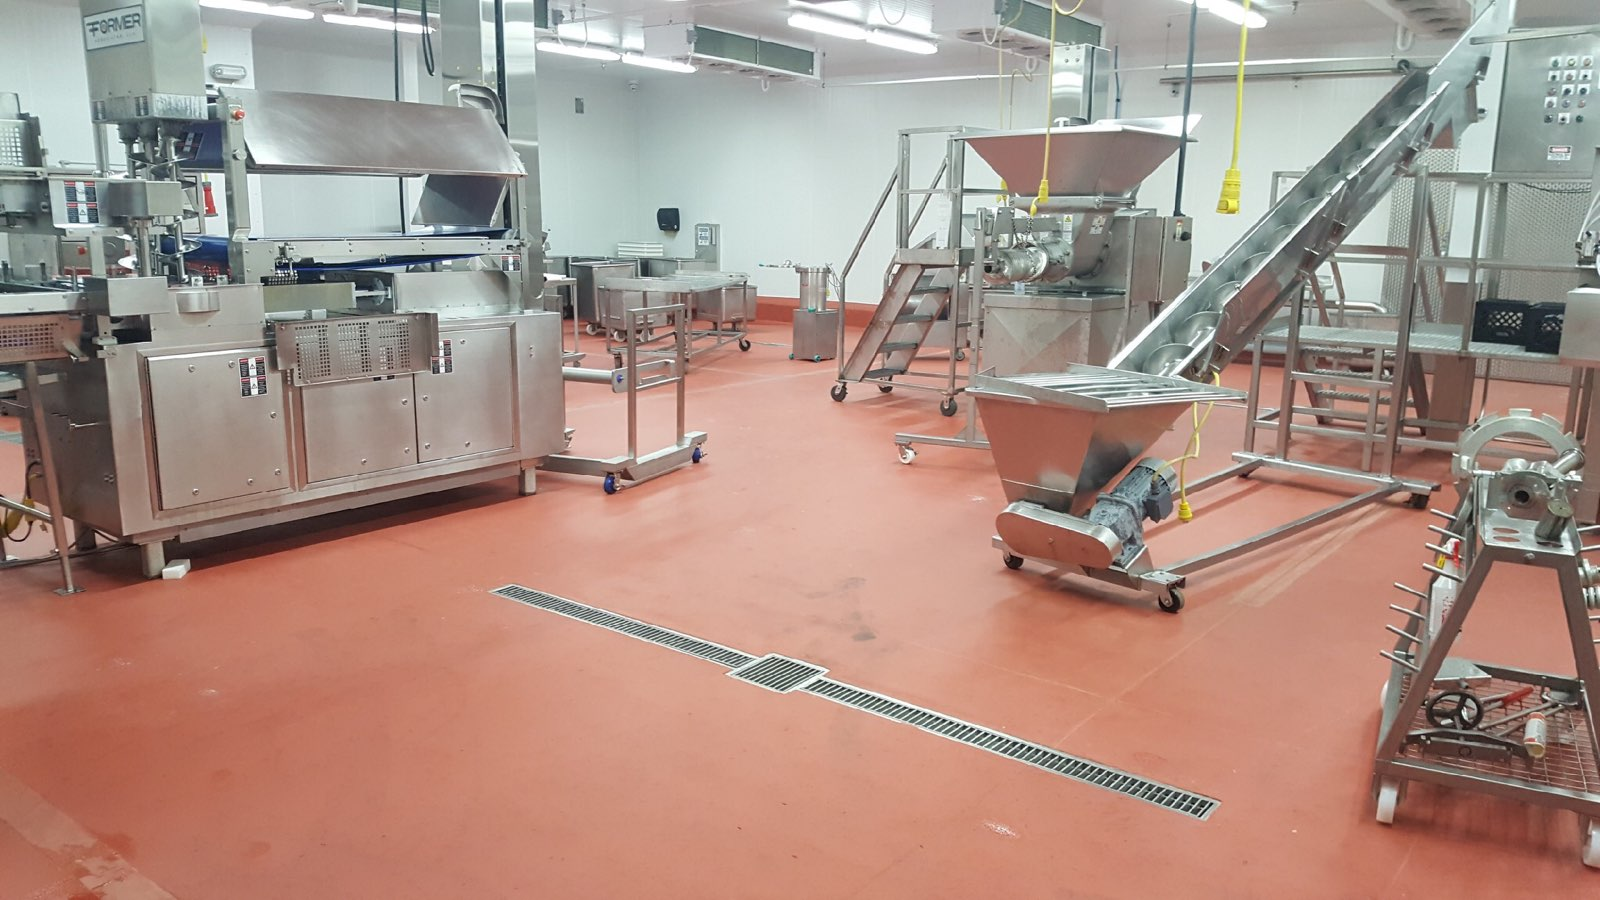 Hygienic Flooring The Role Of Floor Coatings In Keeping Food Safe Process Expo 2021